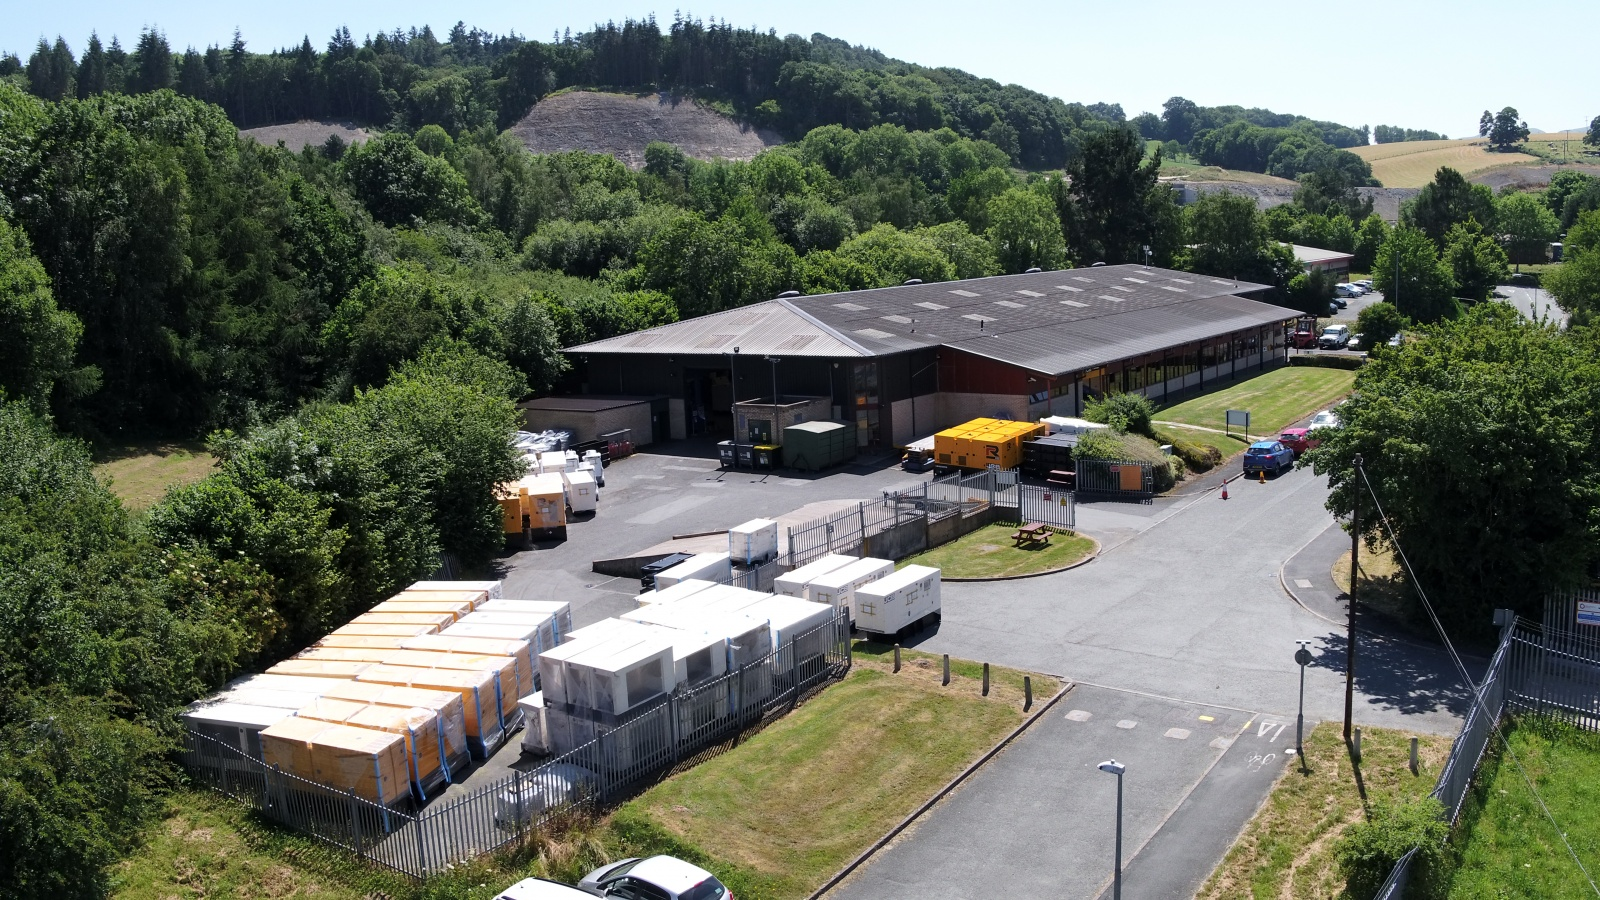 Unit 38, Mochdre Industrial Estate, Newtown, Powys